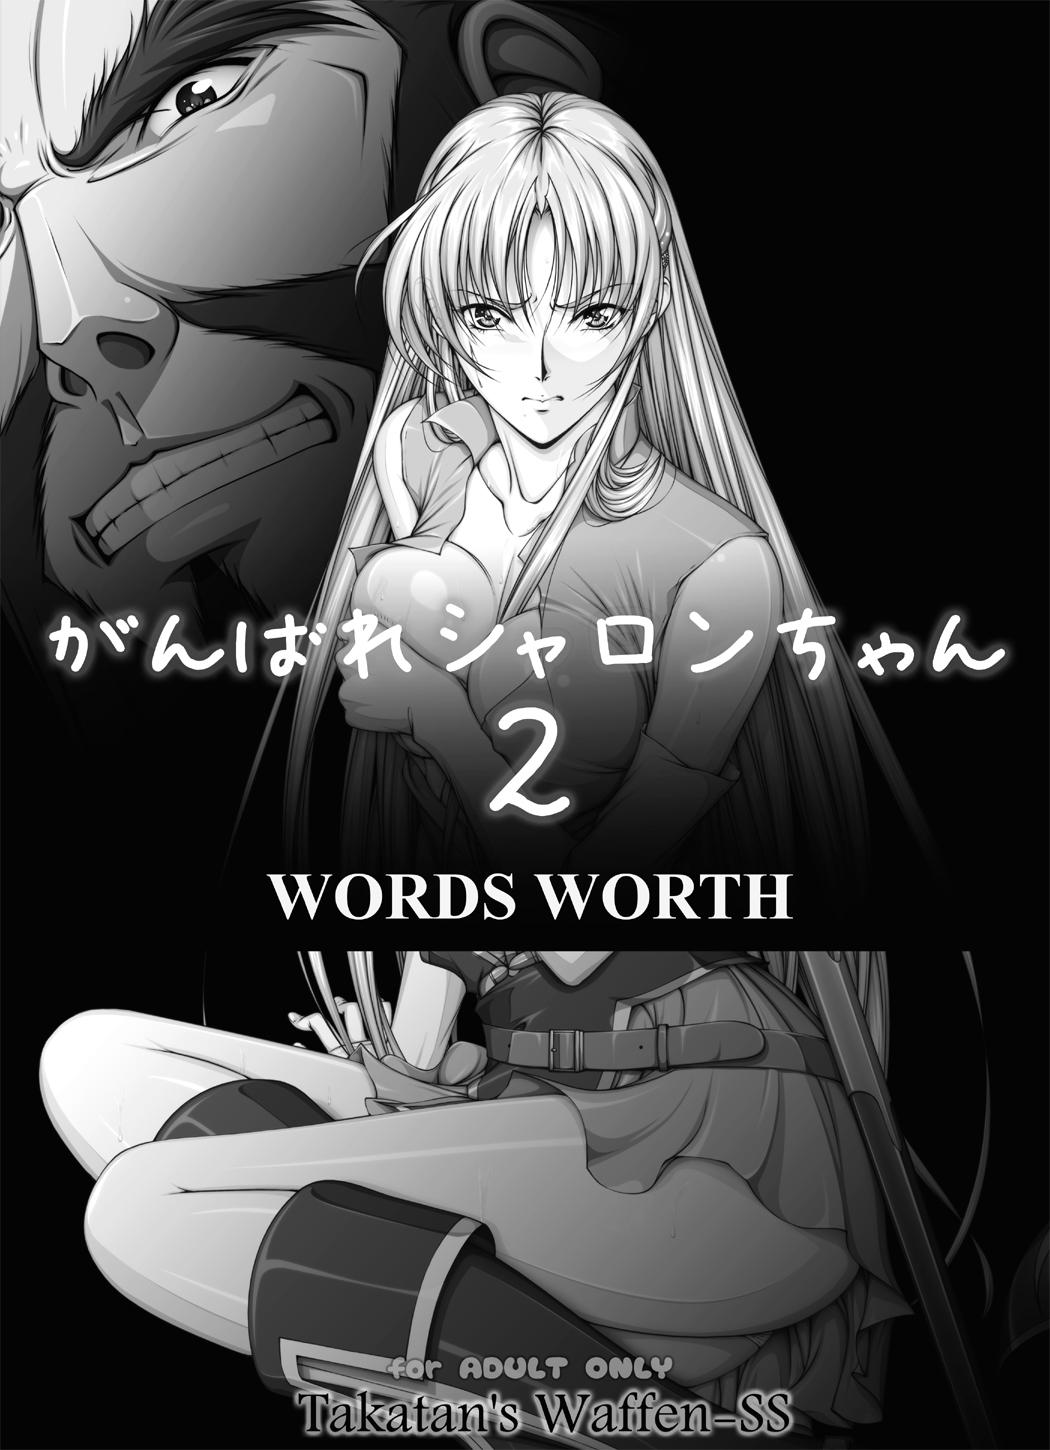 [Takatan's Waffen-SS] Fight, Sharon! 2 [Deluxe Edition] (Words Worth) +omake 7